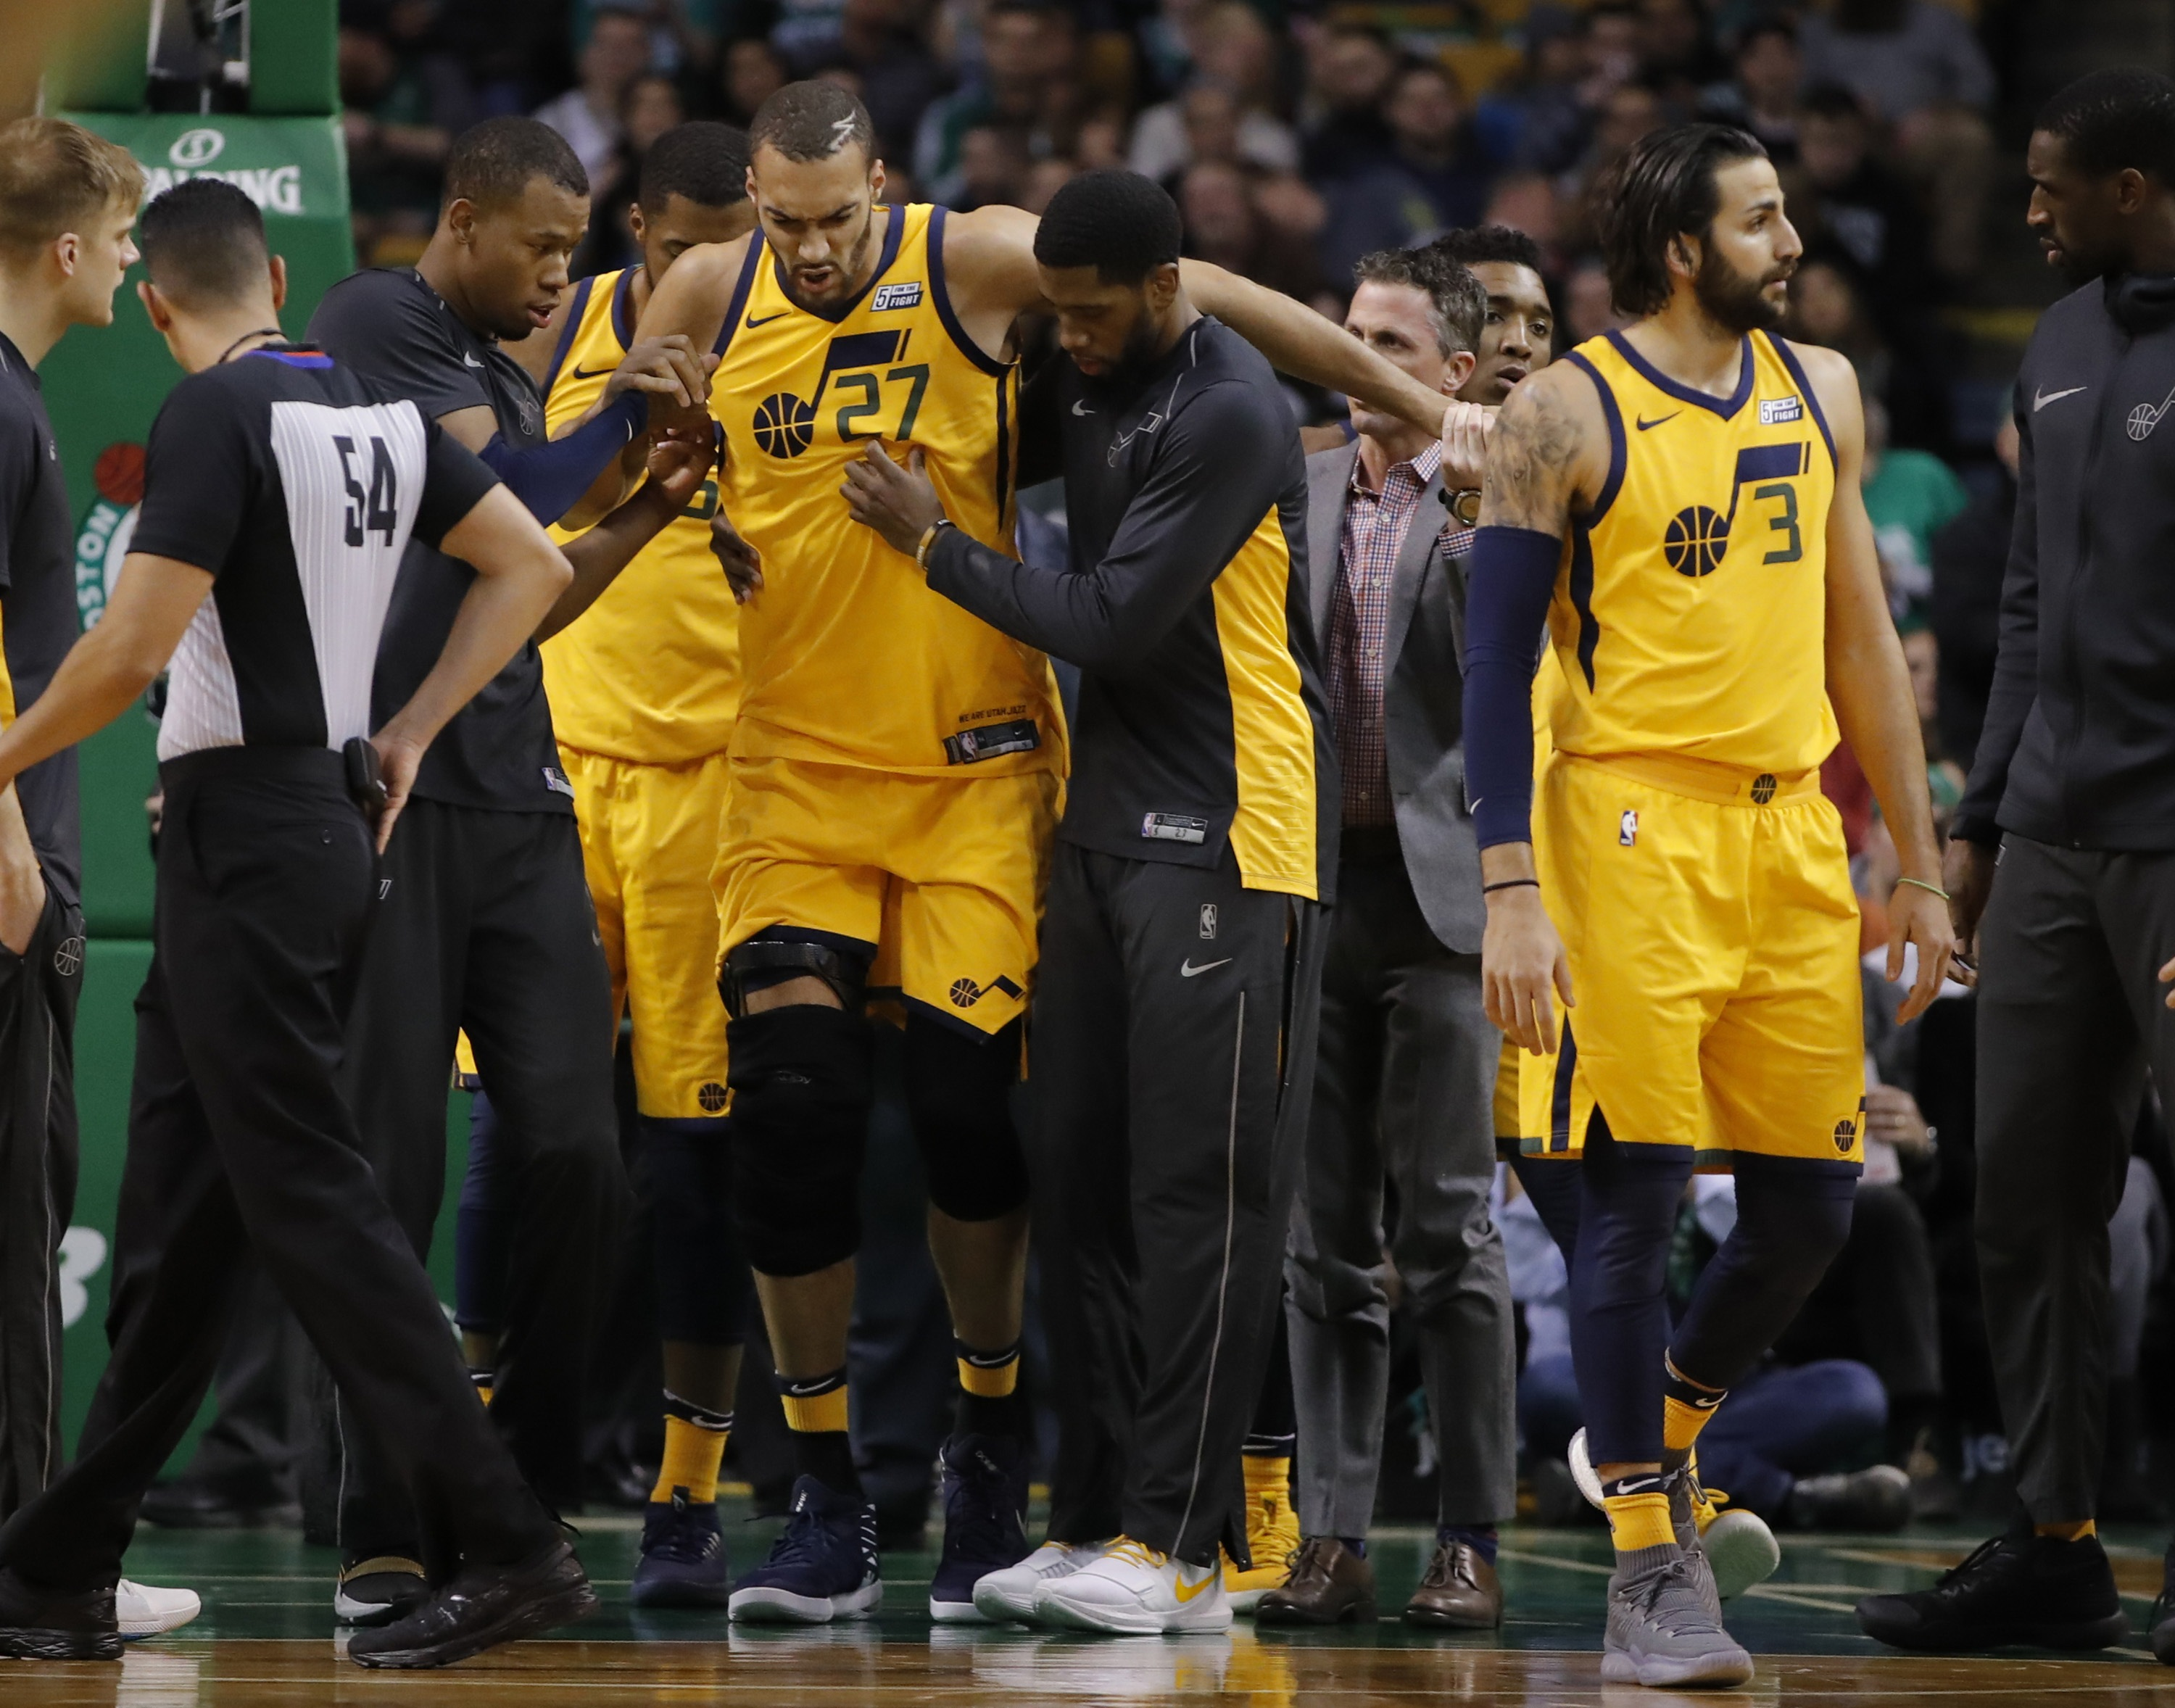 Jazz C Gobert, F Favors exit with injuries